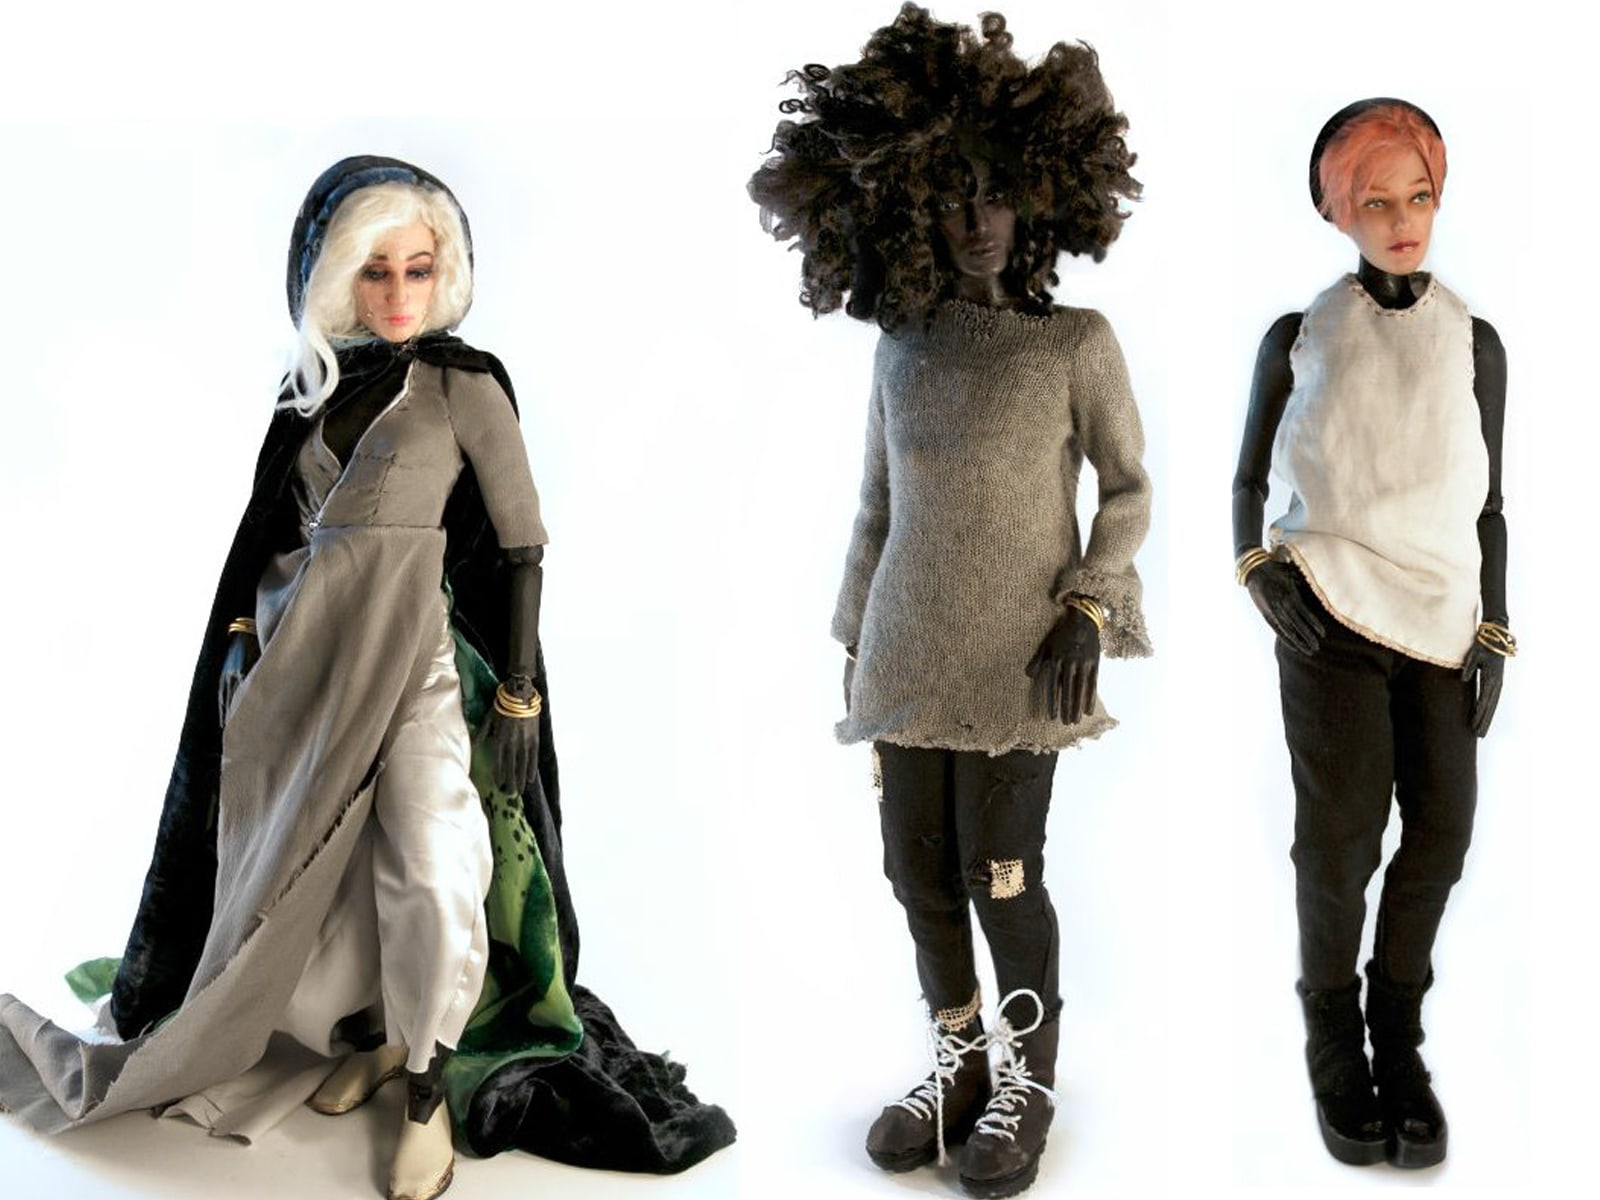 Isabel's action figures are dramatically swathed in layers of natural fabric